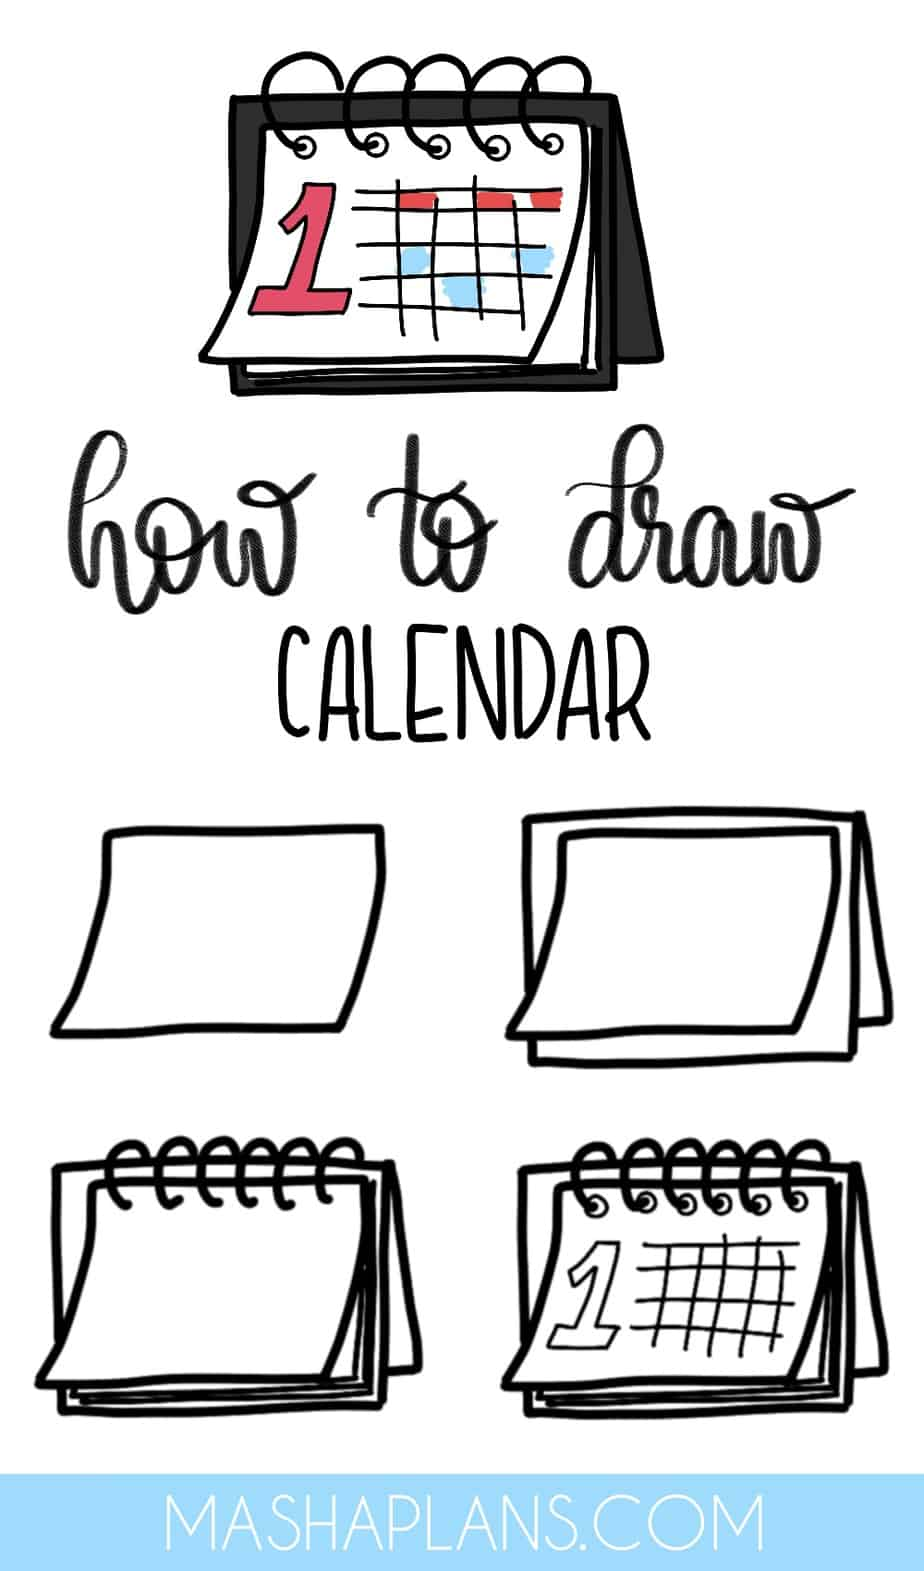 Cute and Easy Stationery Bullet Journal Doodles, Calendar | Masha Plans